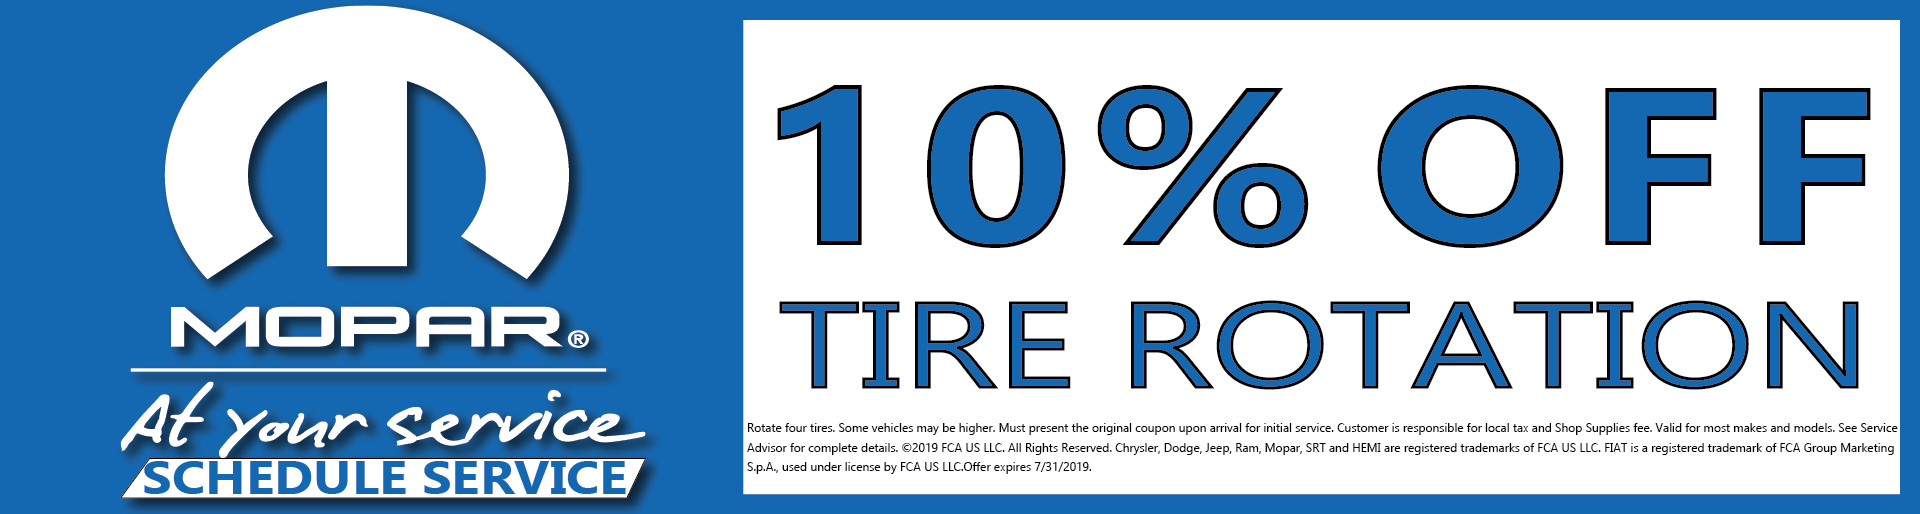 10% Off Tire Rotation Marina Dodge